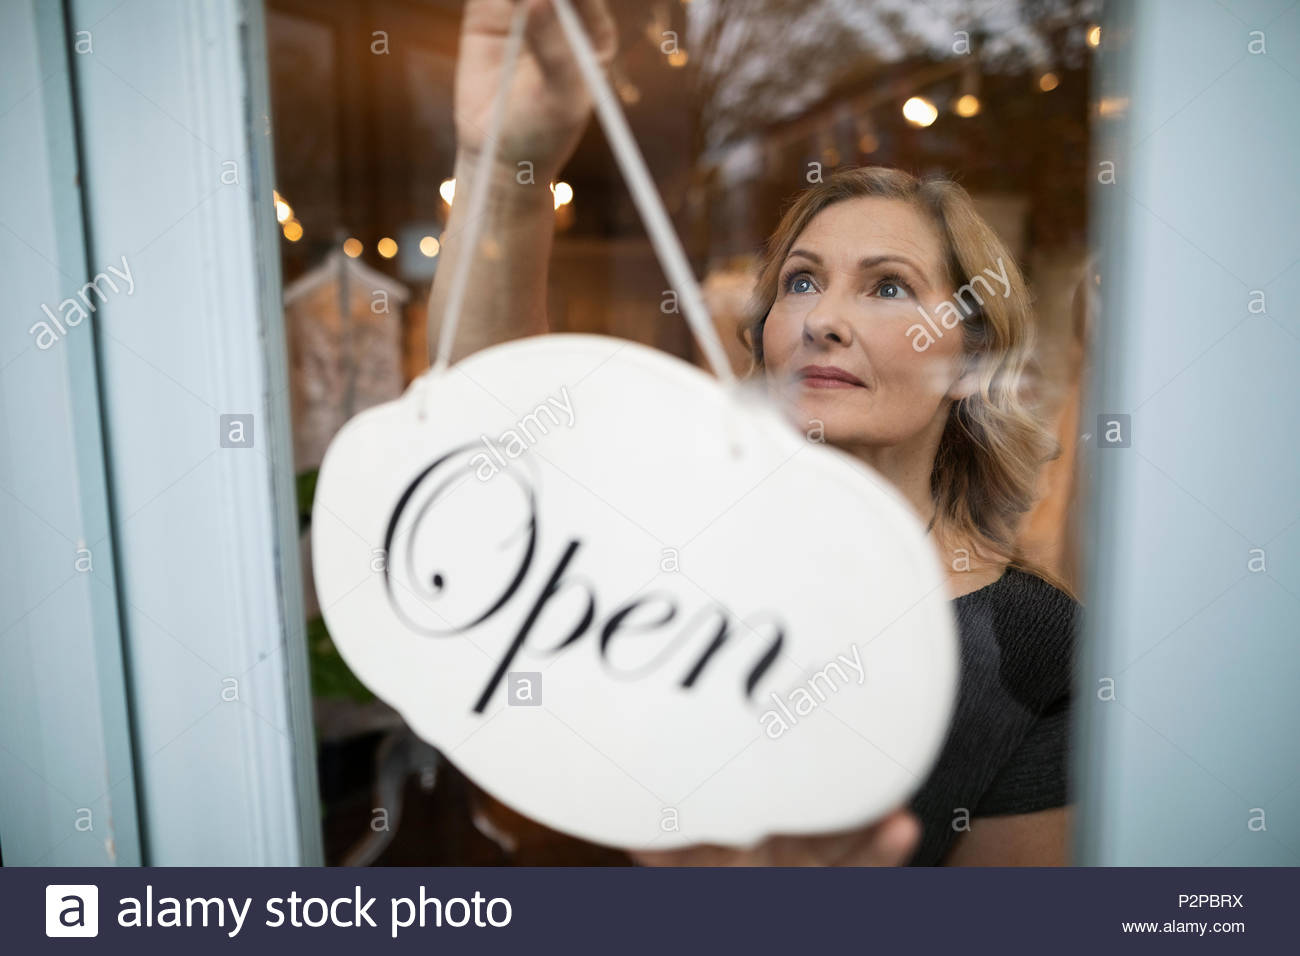 Bridal boutique owner hanging open sign in window - Stock Image